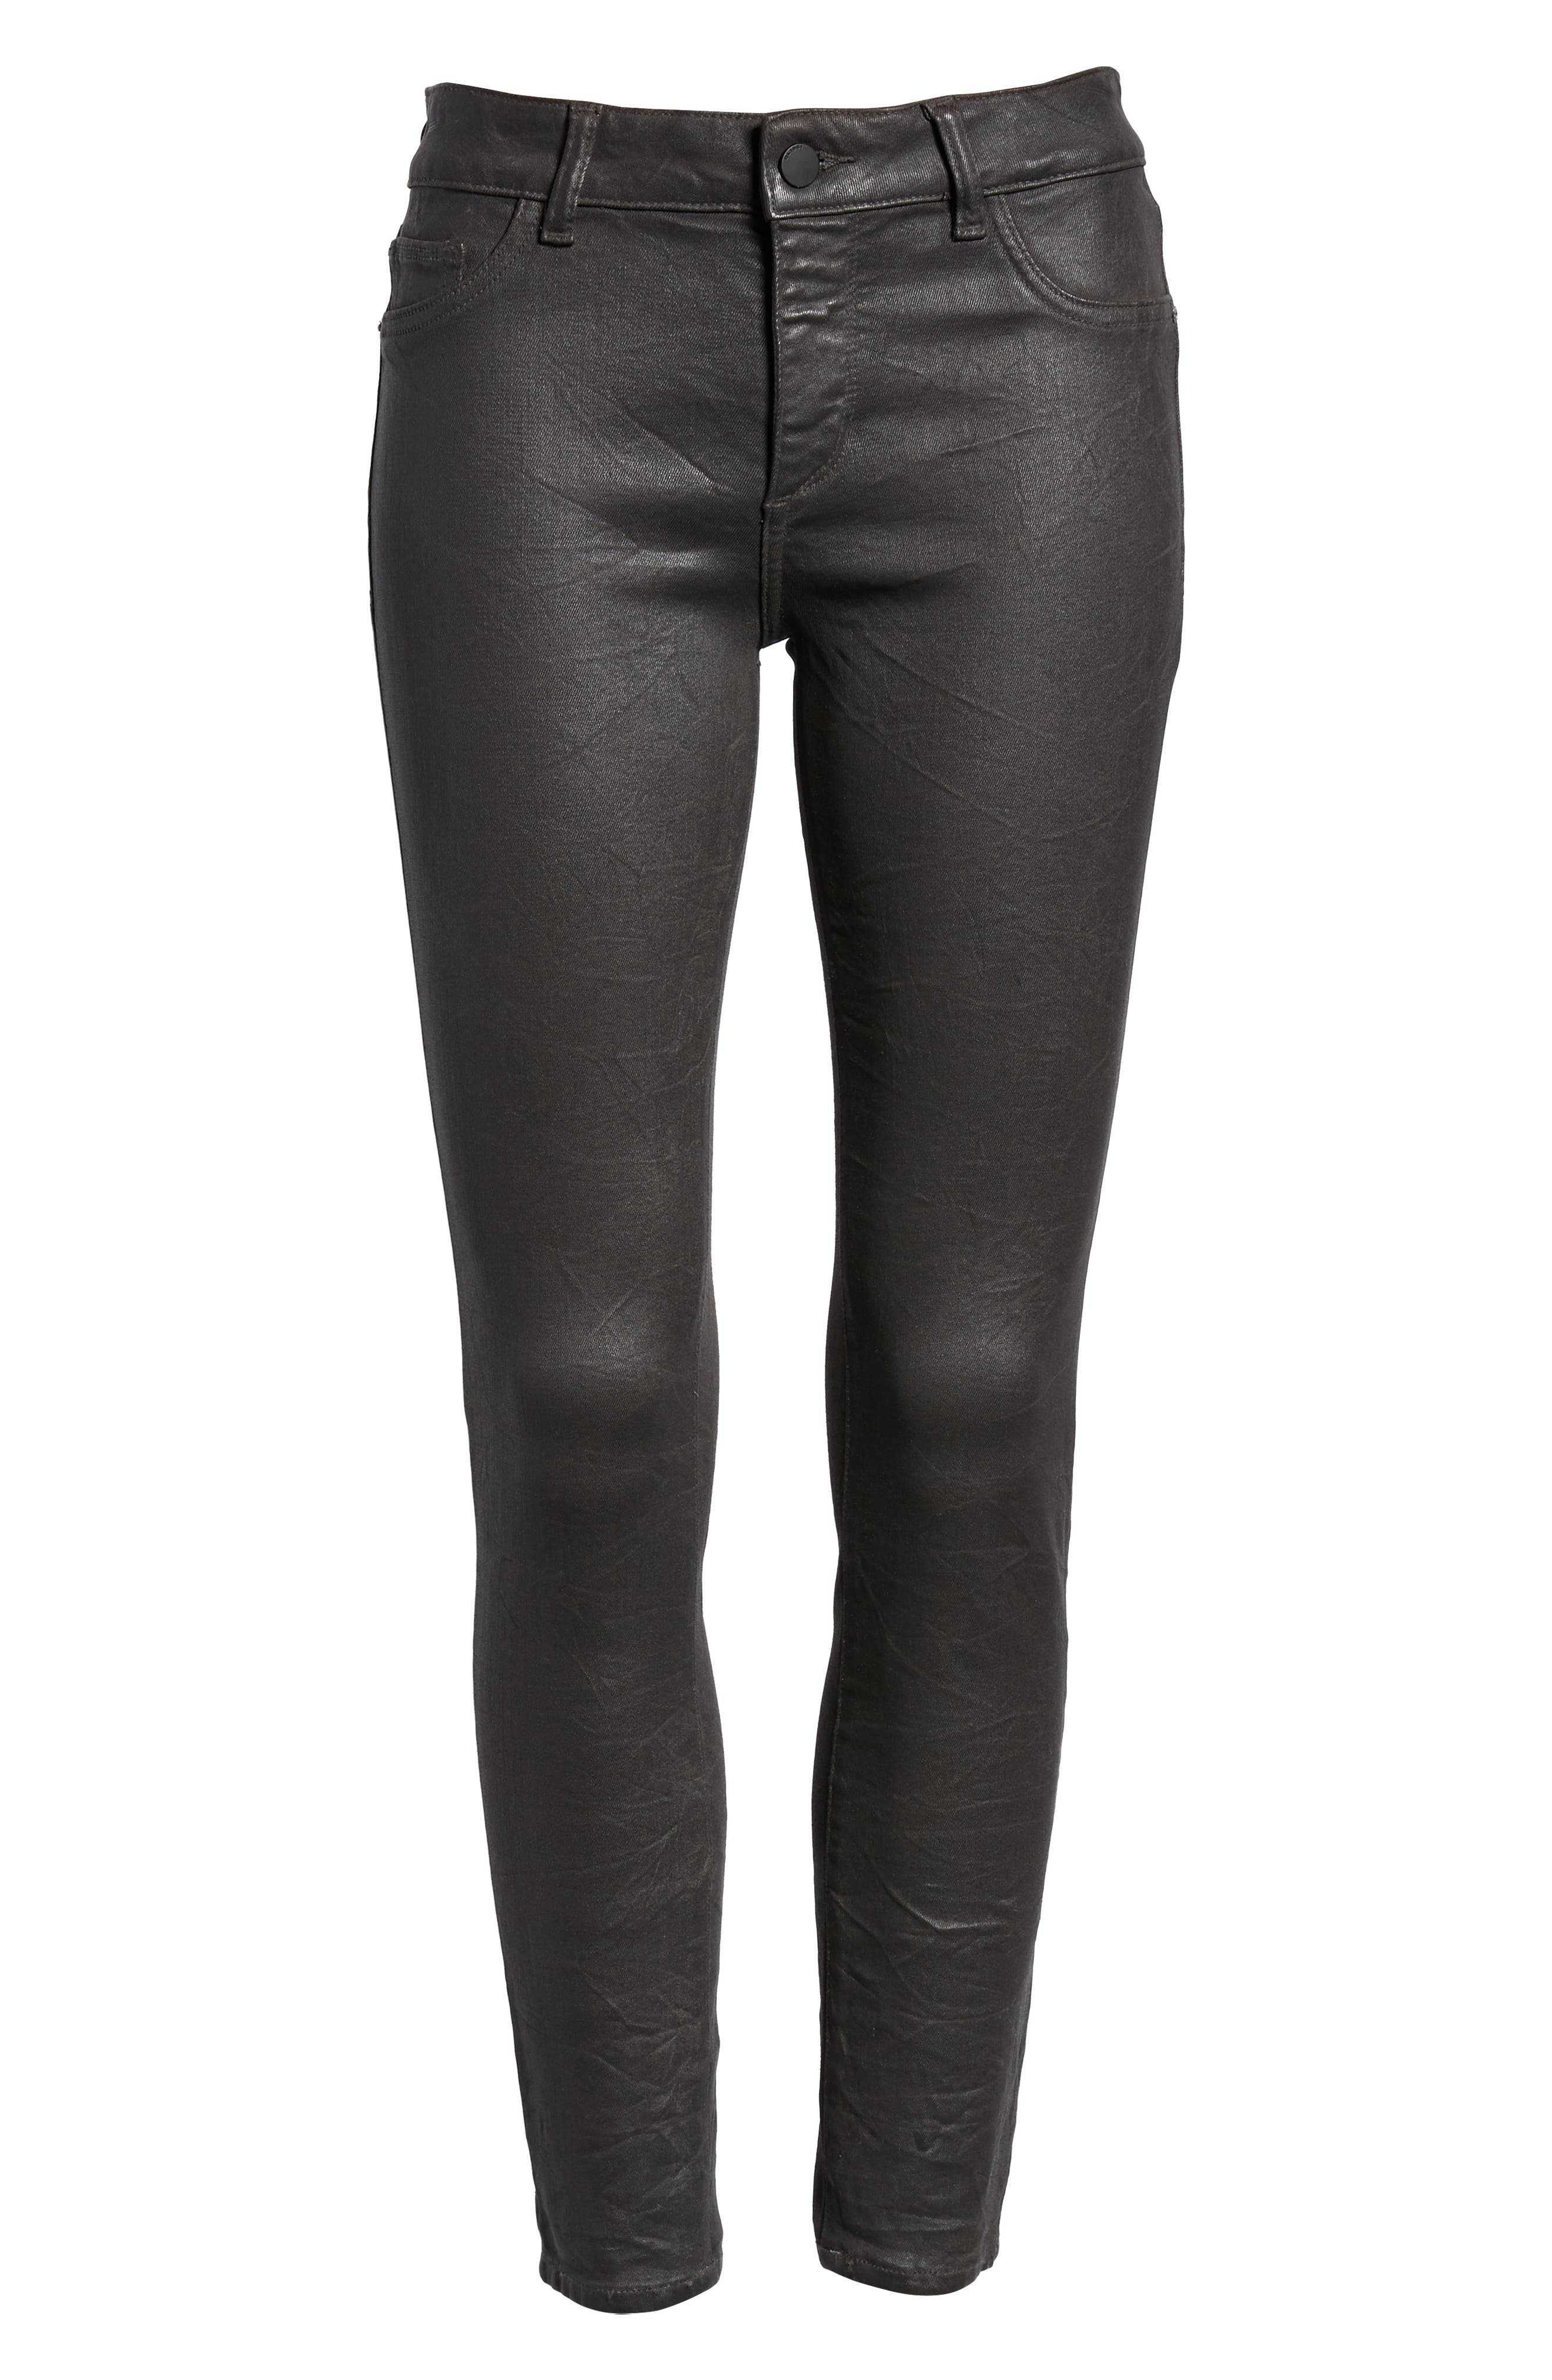 Florence Instasculpt Coated Ankle Skinny Jeans,                             Alternate thumbnail 7, color,                             PEWTER